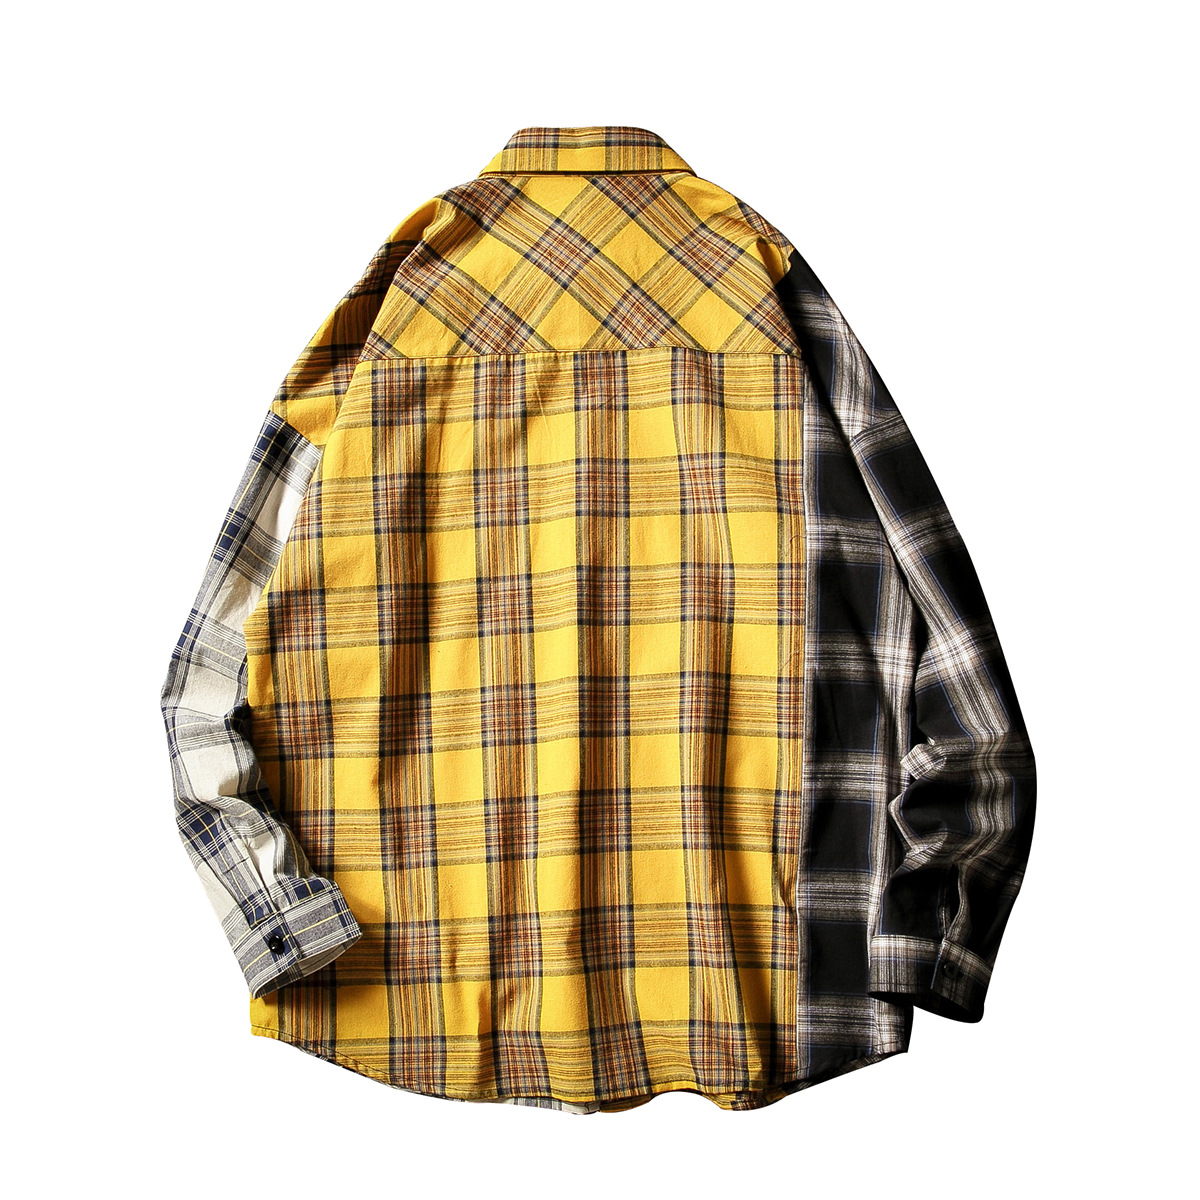 BTS Idol SUGA Unisex Plaid T-Shirt